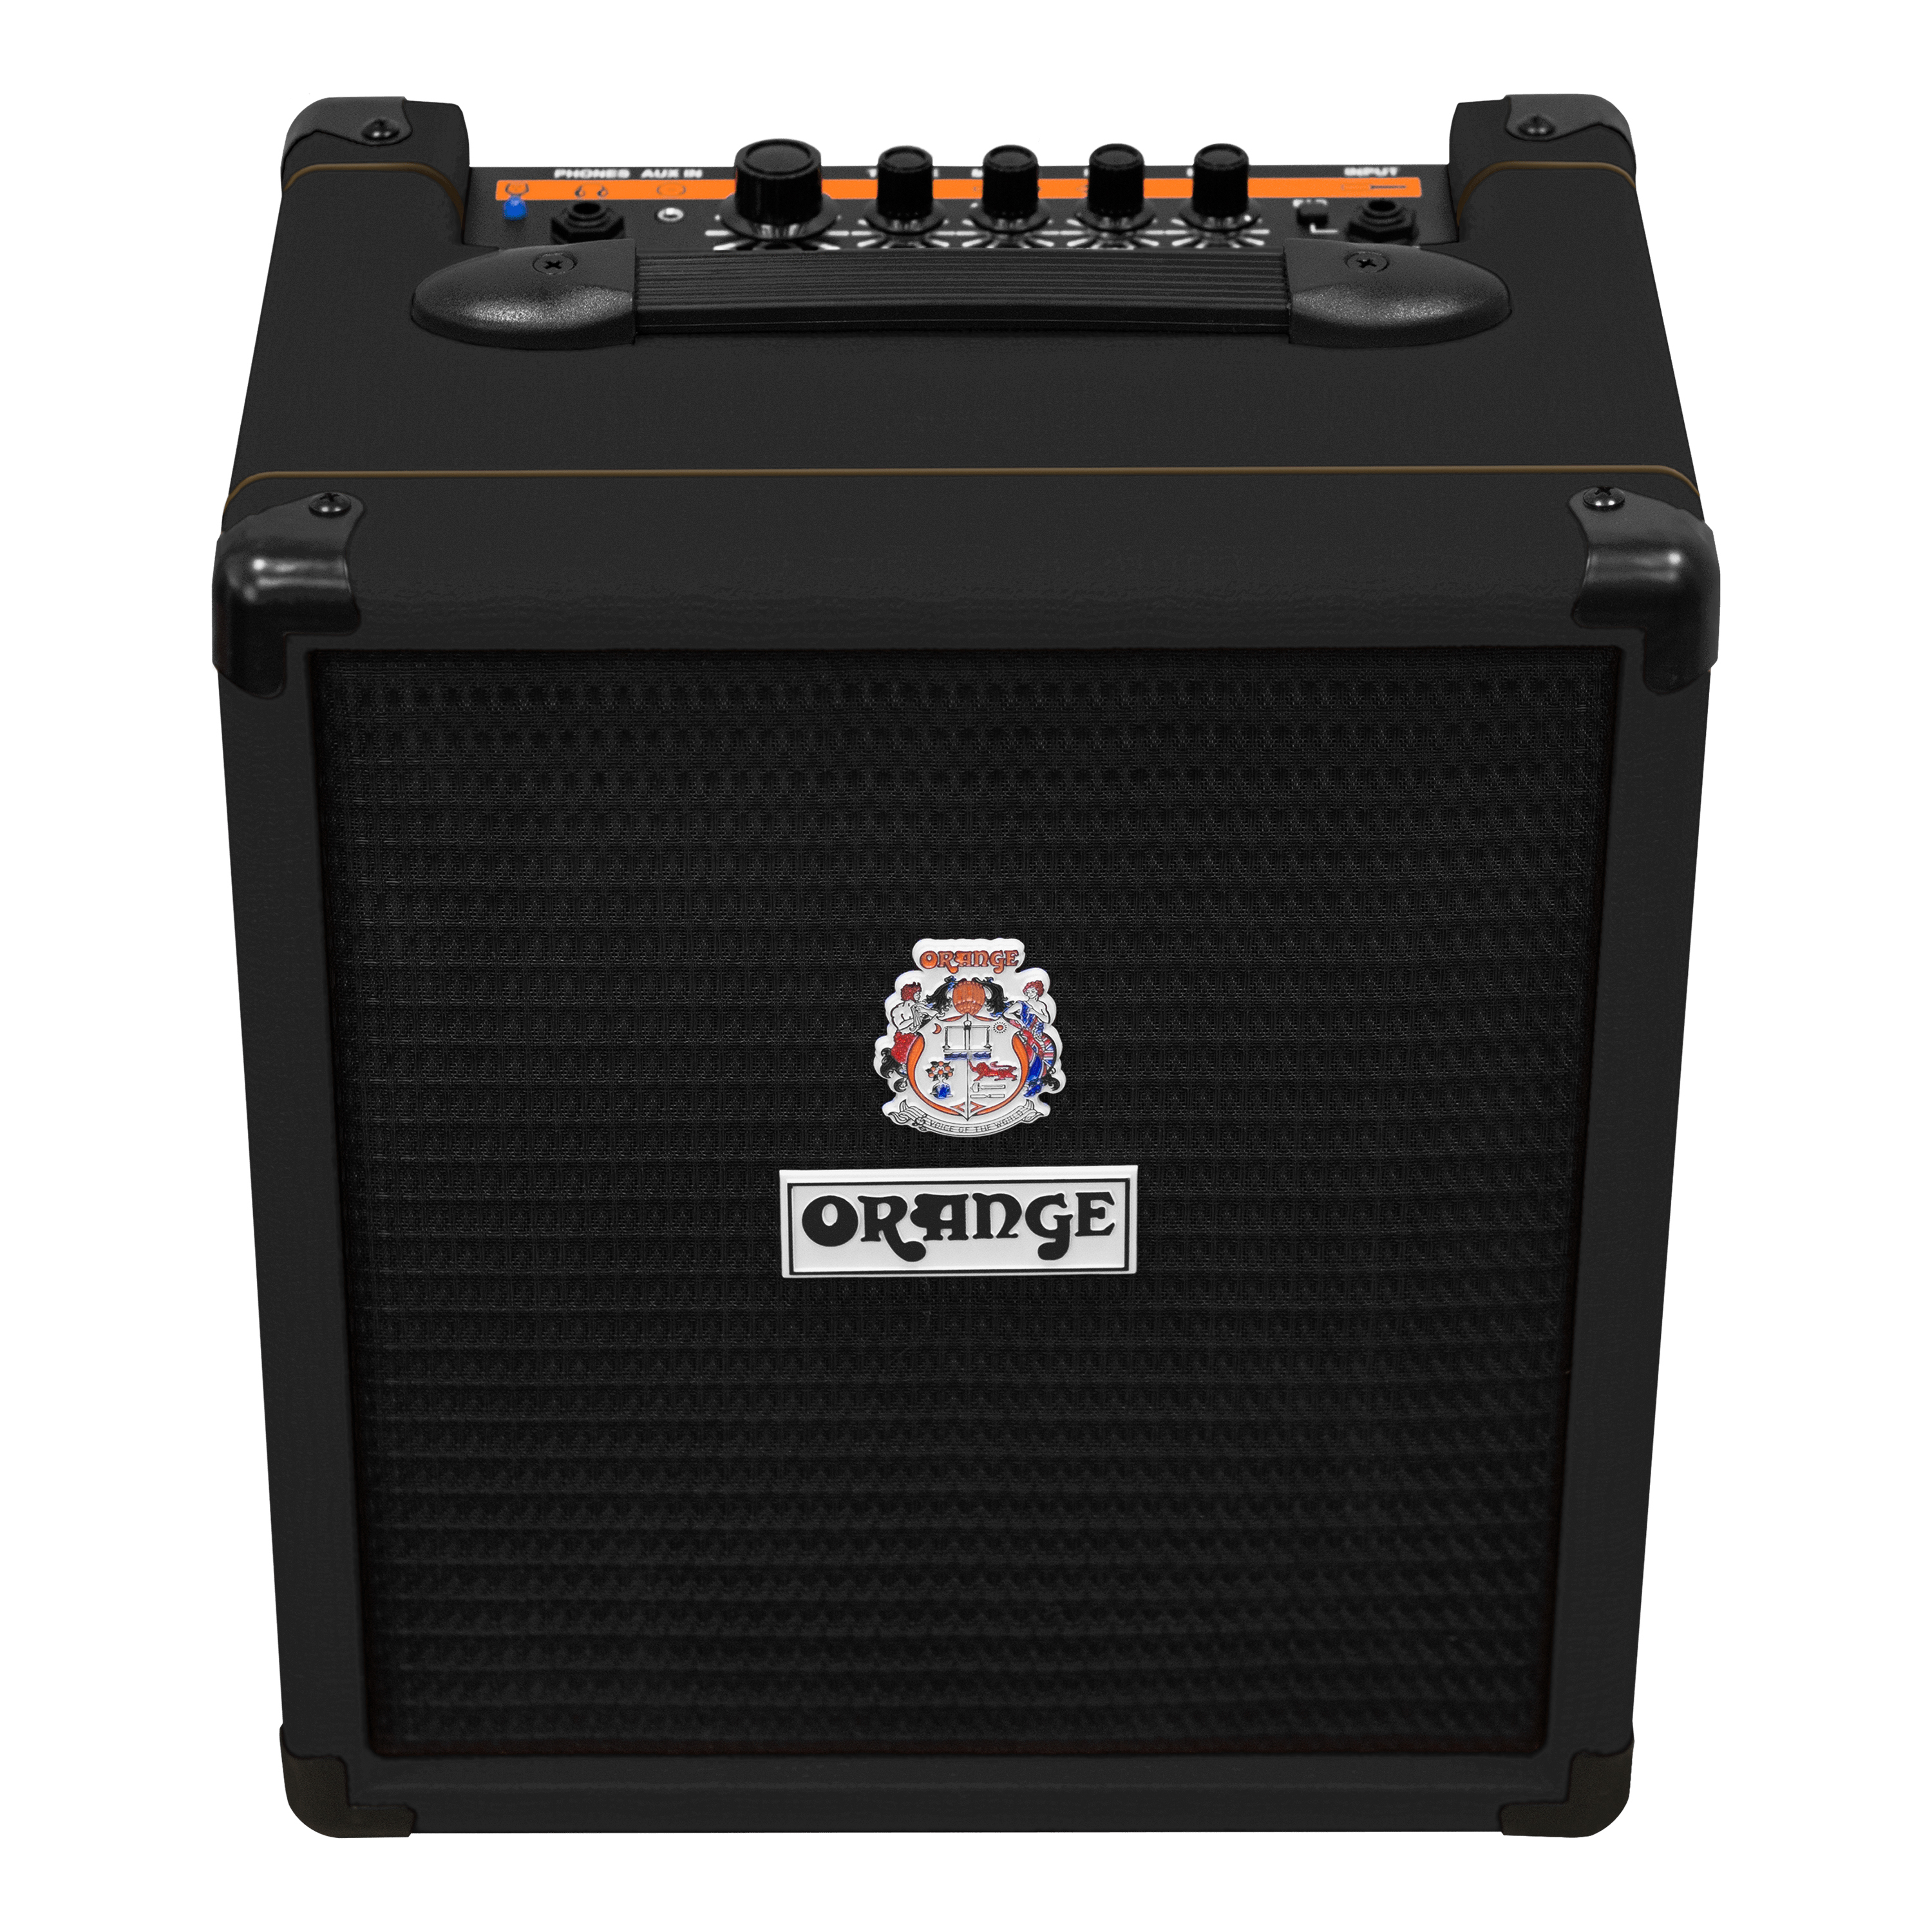 musicworks bass guitar combo amplifiers bass combos orange amp combo bass crush 25w black. Black Bedroom Furniture Sets. Home Design Ideas